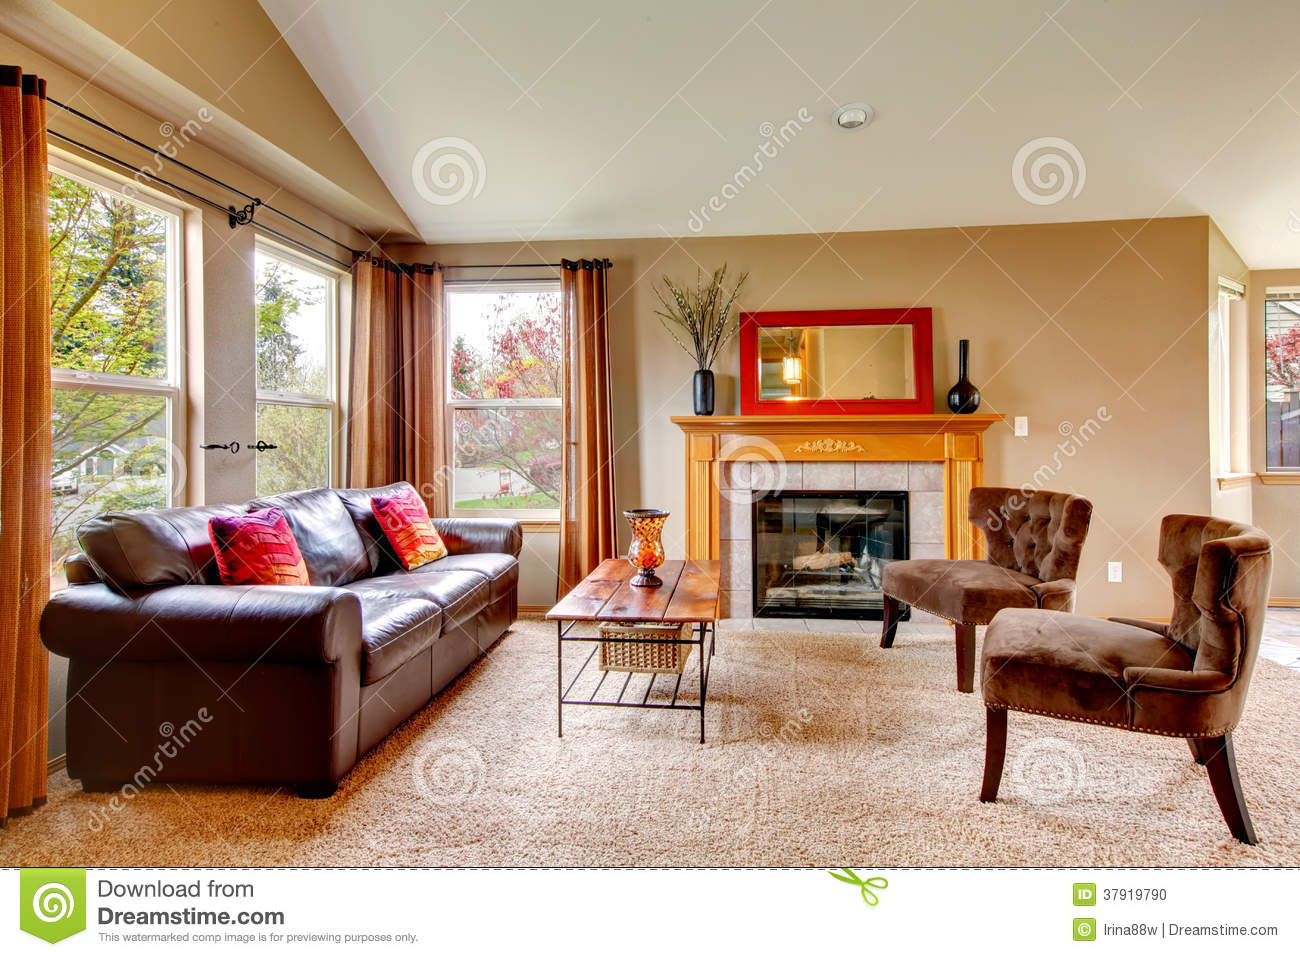 Cozy Living Room With Fireplace Stock Photo Image 37919790